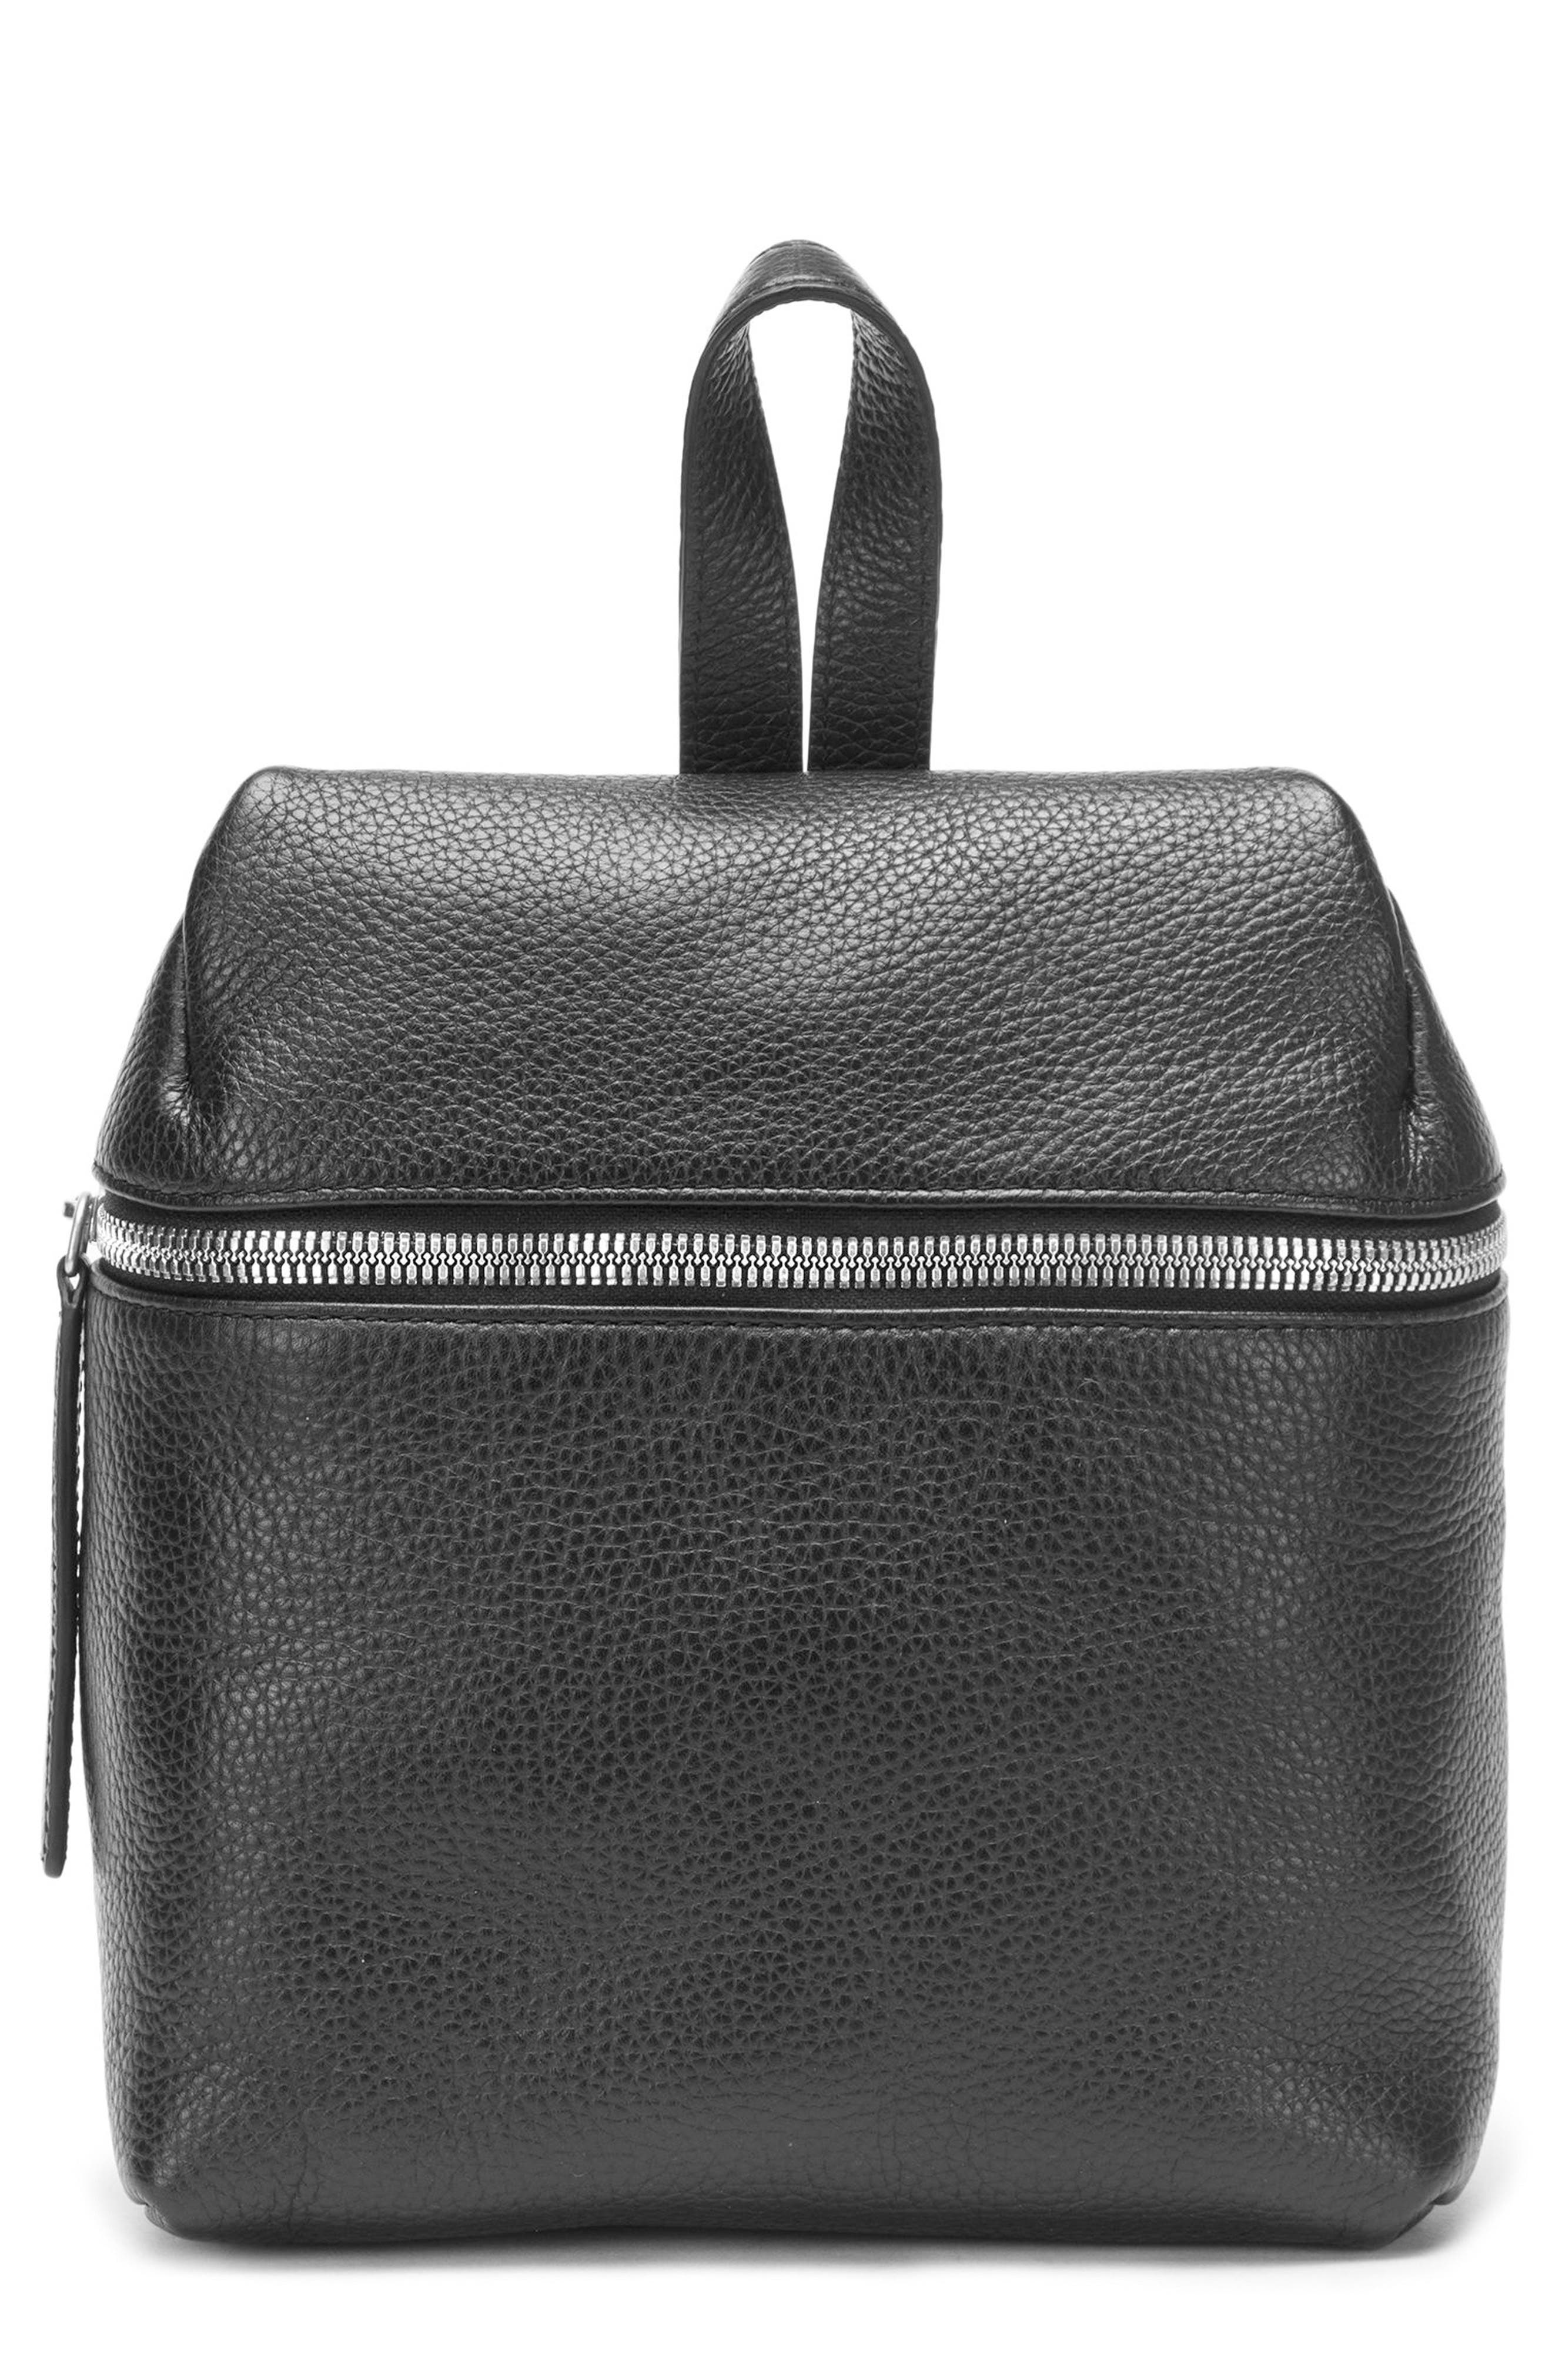 Alternate Image 1 Selected - KARA Small Pebbled Leather Backpack